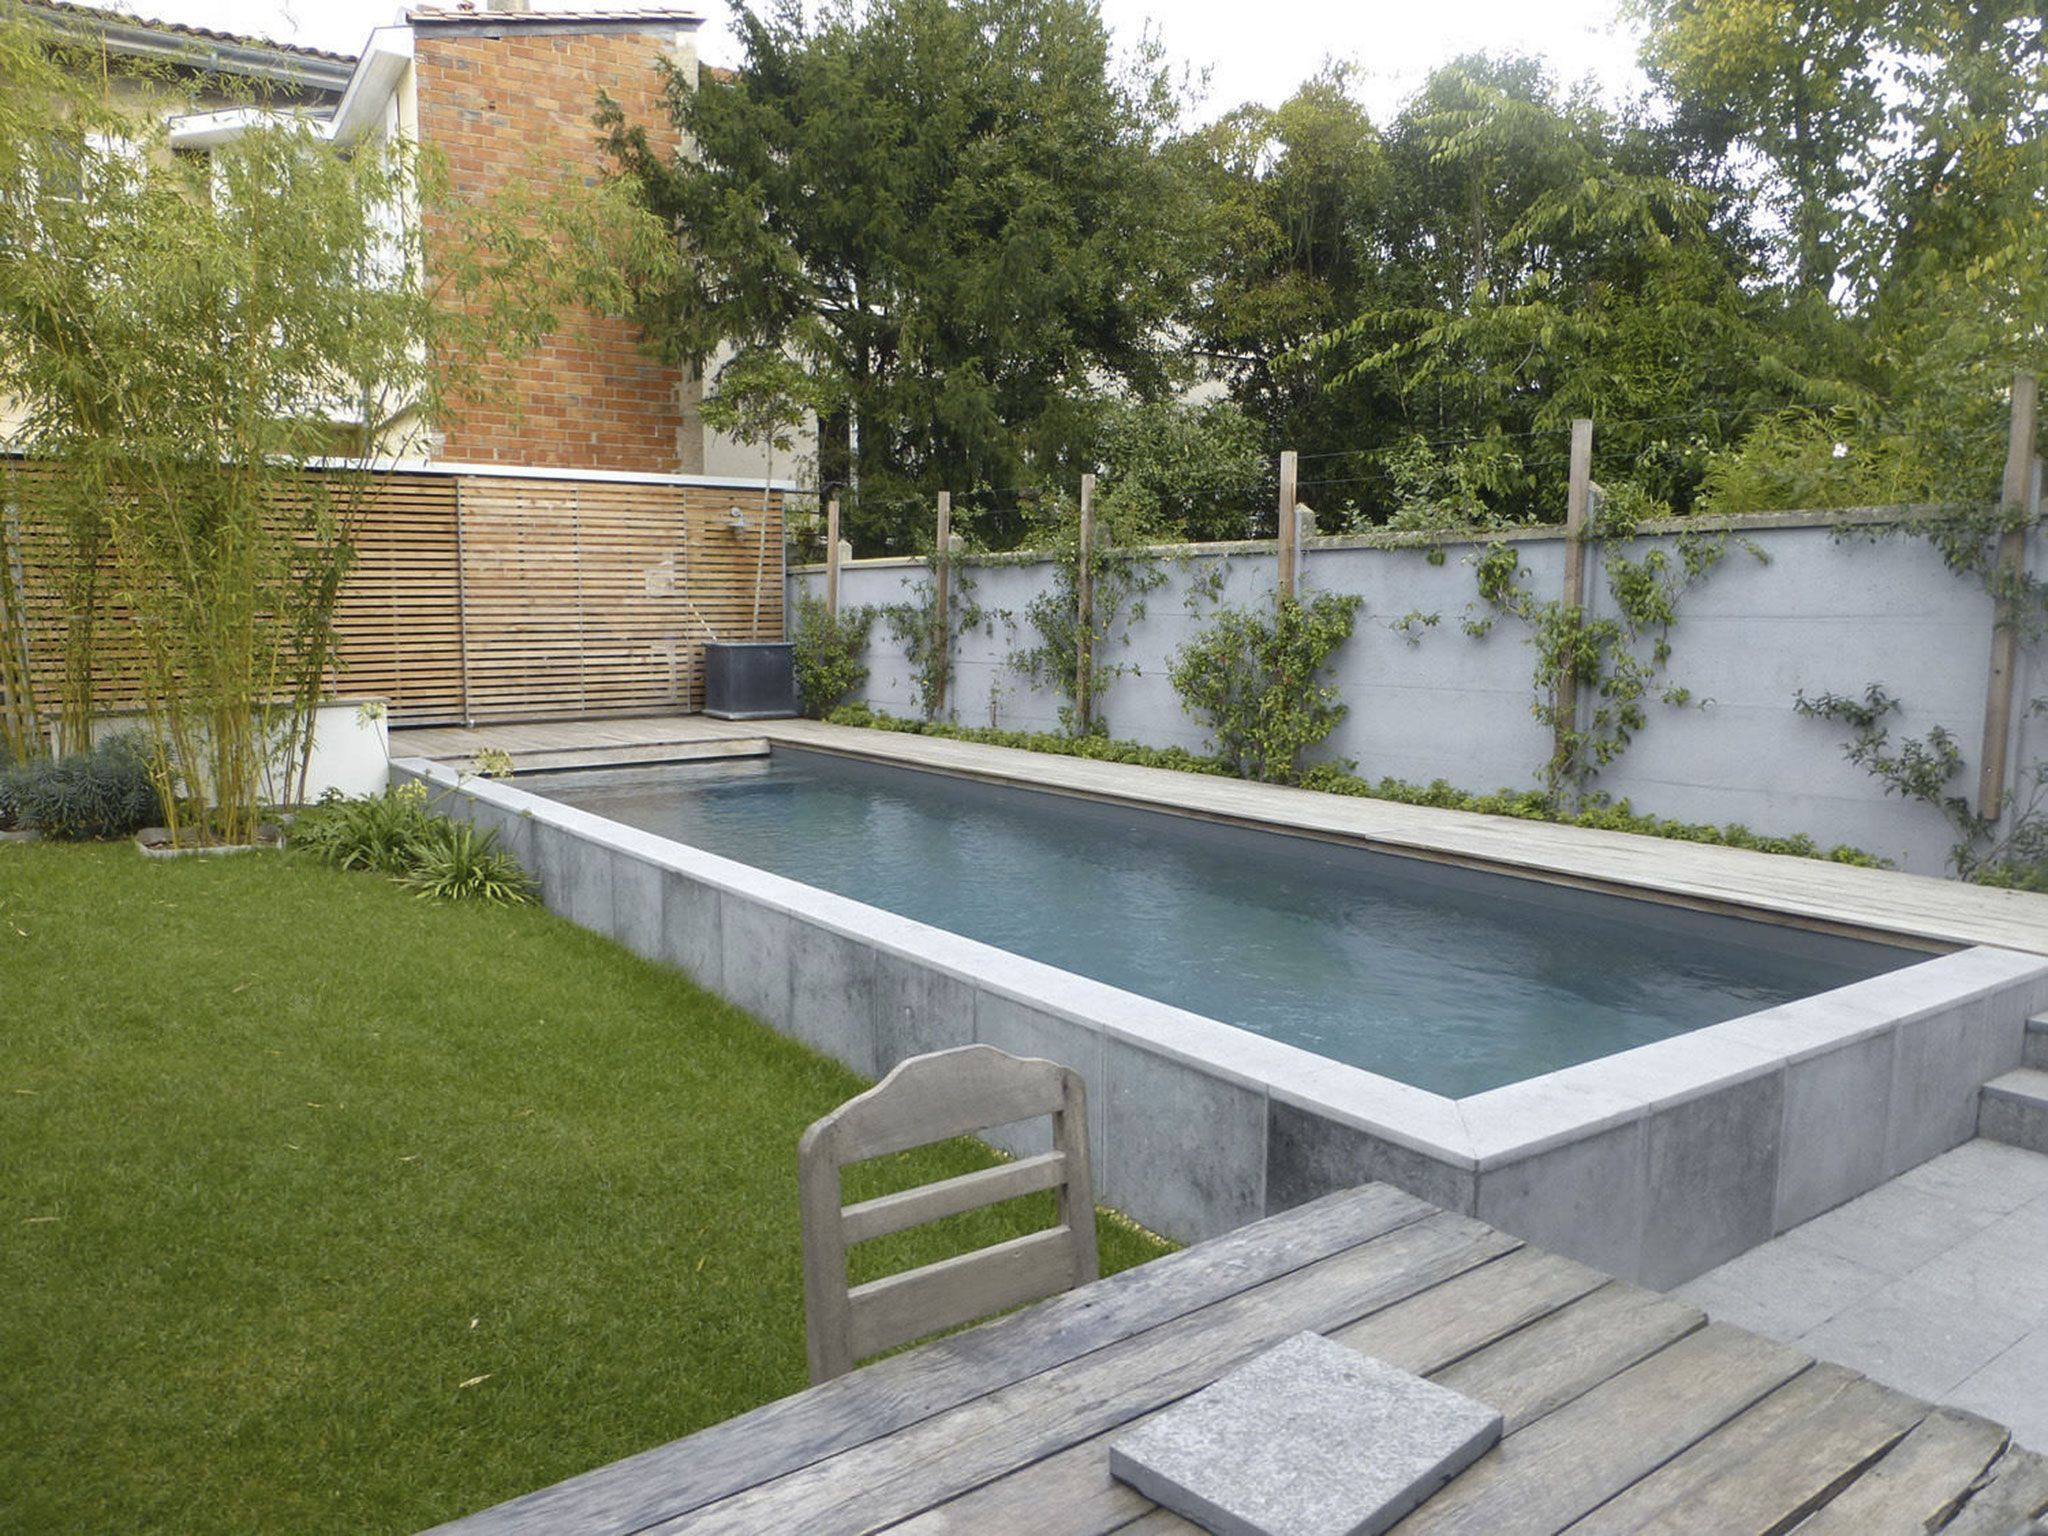 Piscine semi enterr e en b ton pool margelles - Terrasse piscine semi enterree ...